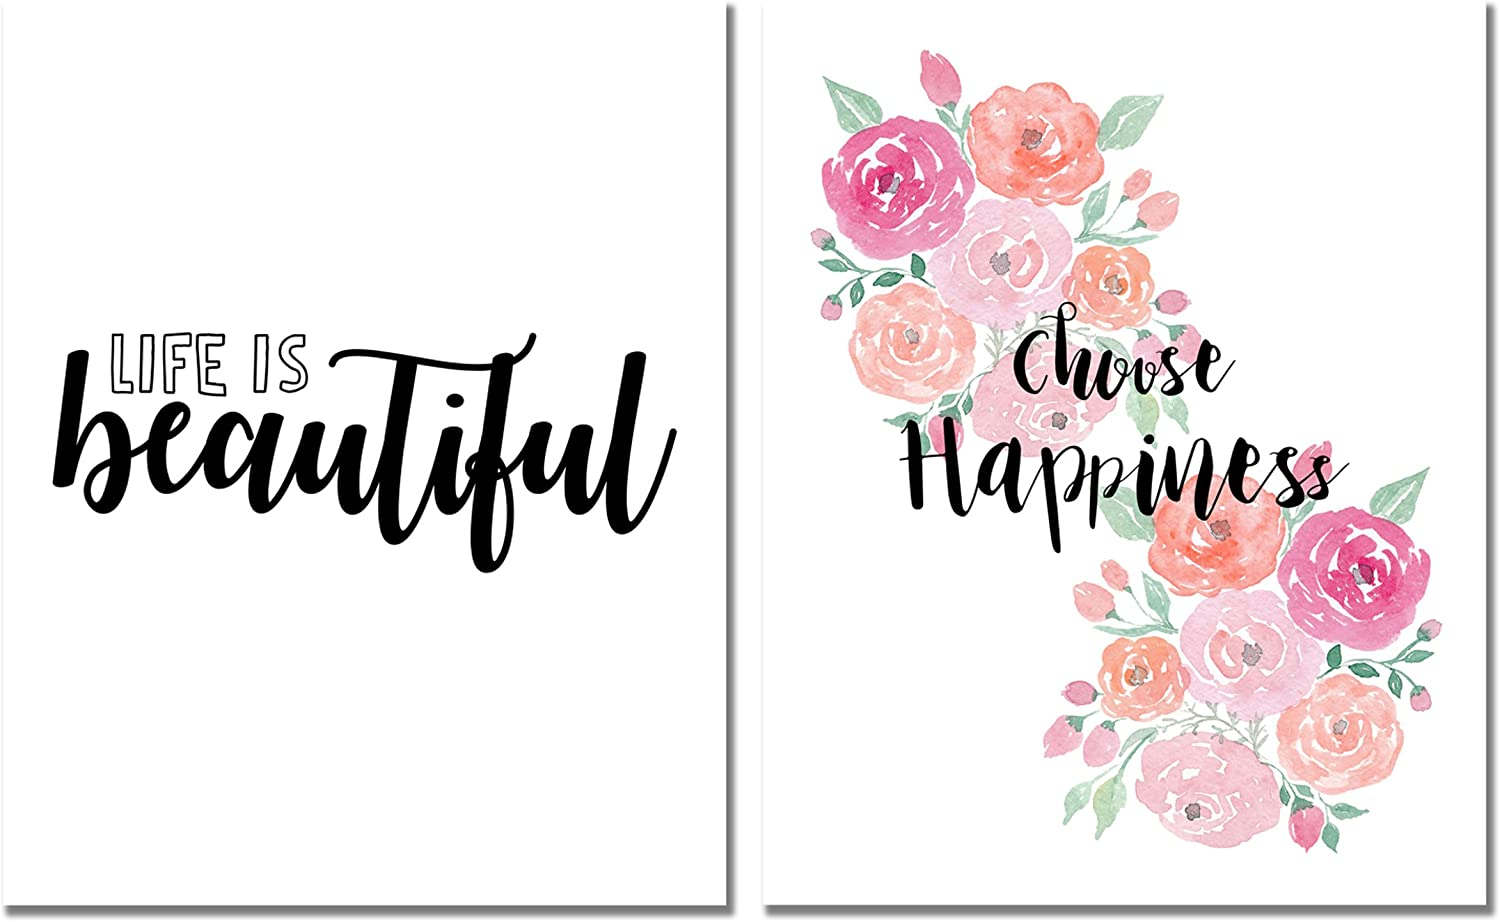 Life is Beautiful Print & Choose Happiness Set of 2 Inspirational (8 inches x 10 inches) Photos - Wall Art Decor Posters